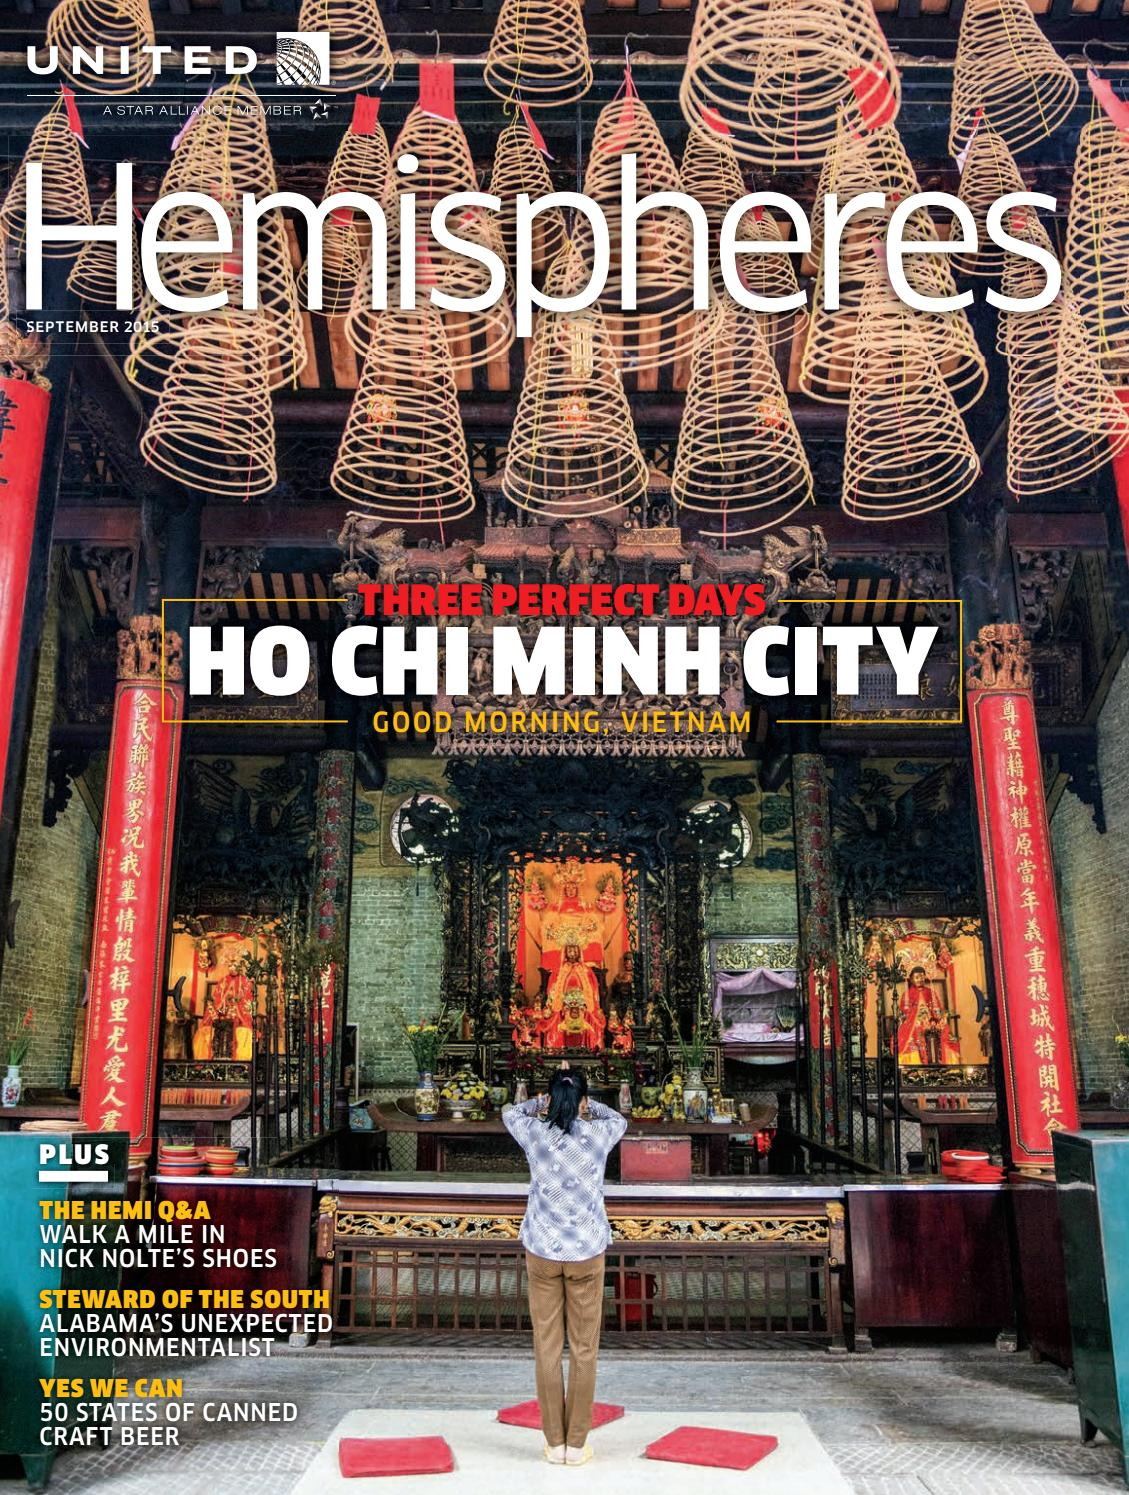 United Airlines Hemispheres Magazine September 2015 By Ahmed